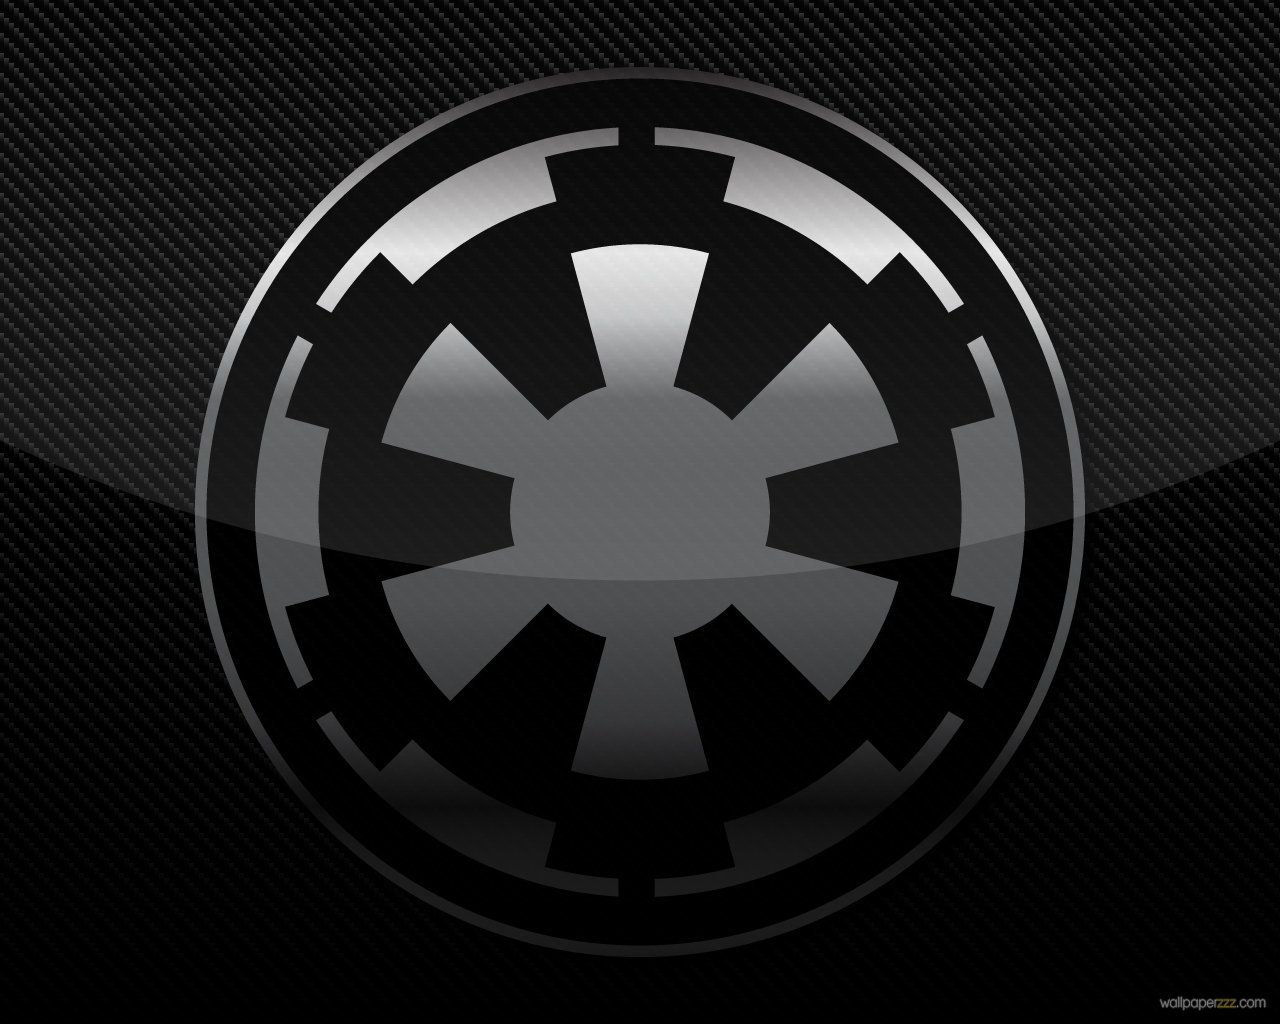 Star Wars Empire Wallpaper Phone Empire Wallpaper Star Wars Awesome Star Wars Wallpaper